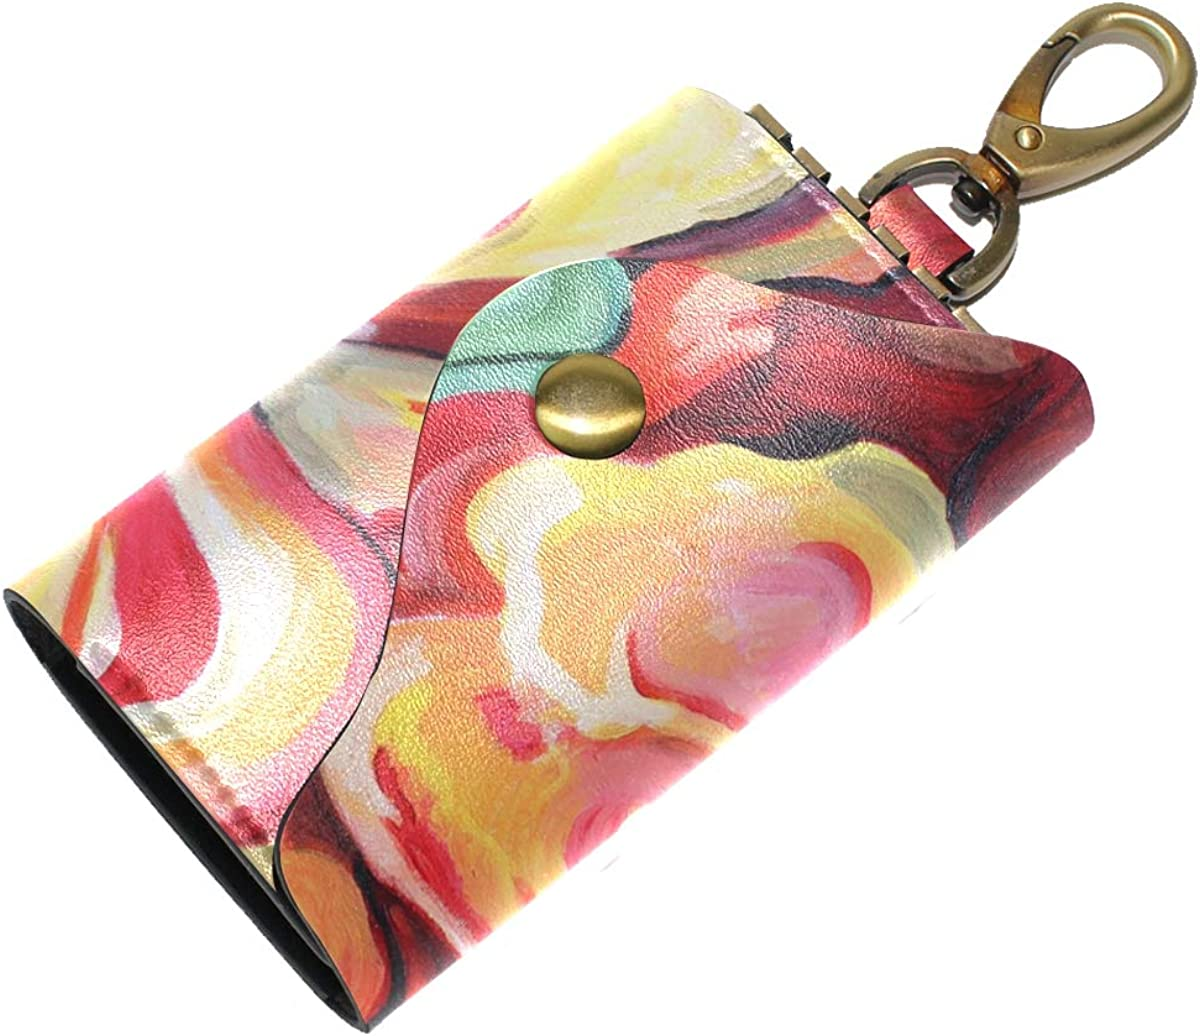 KEAKIA Painting Flower Leather Key Case Wallets Tri-fold Key Holder Keychains with 6 Hooks 2 Slot Snap Closure for Men Women